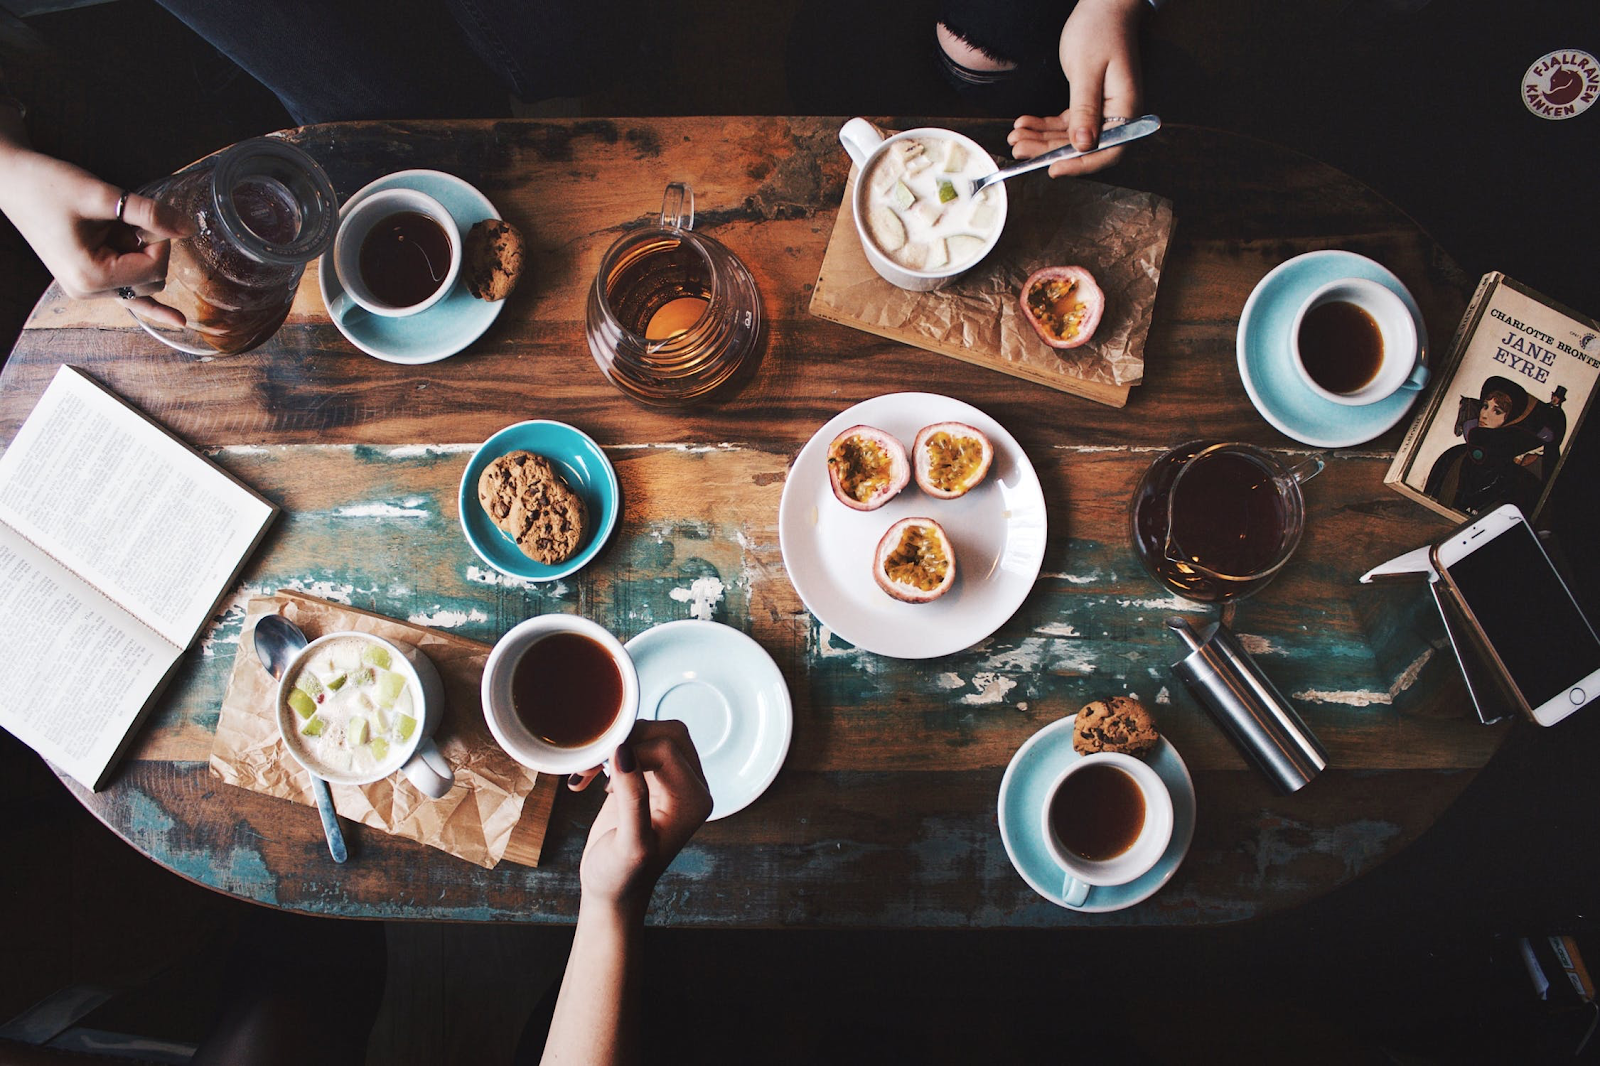 A lively overhead shot of table featuring coffee, books, pastries, and phones